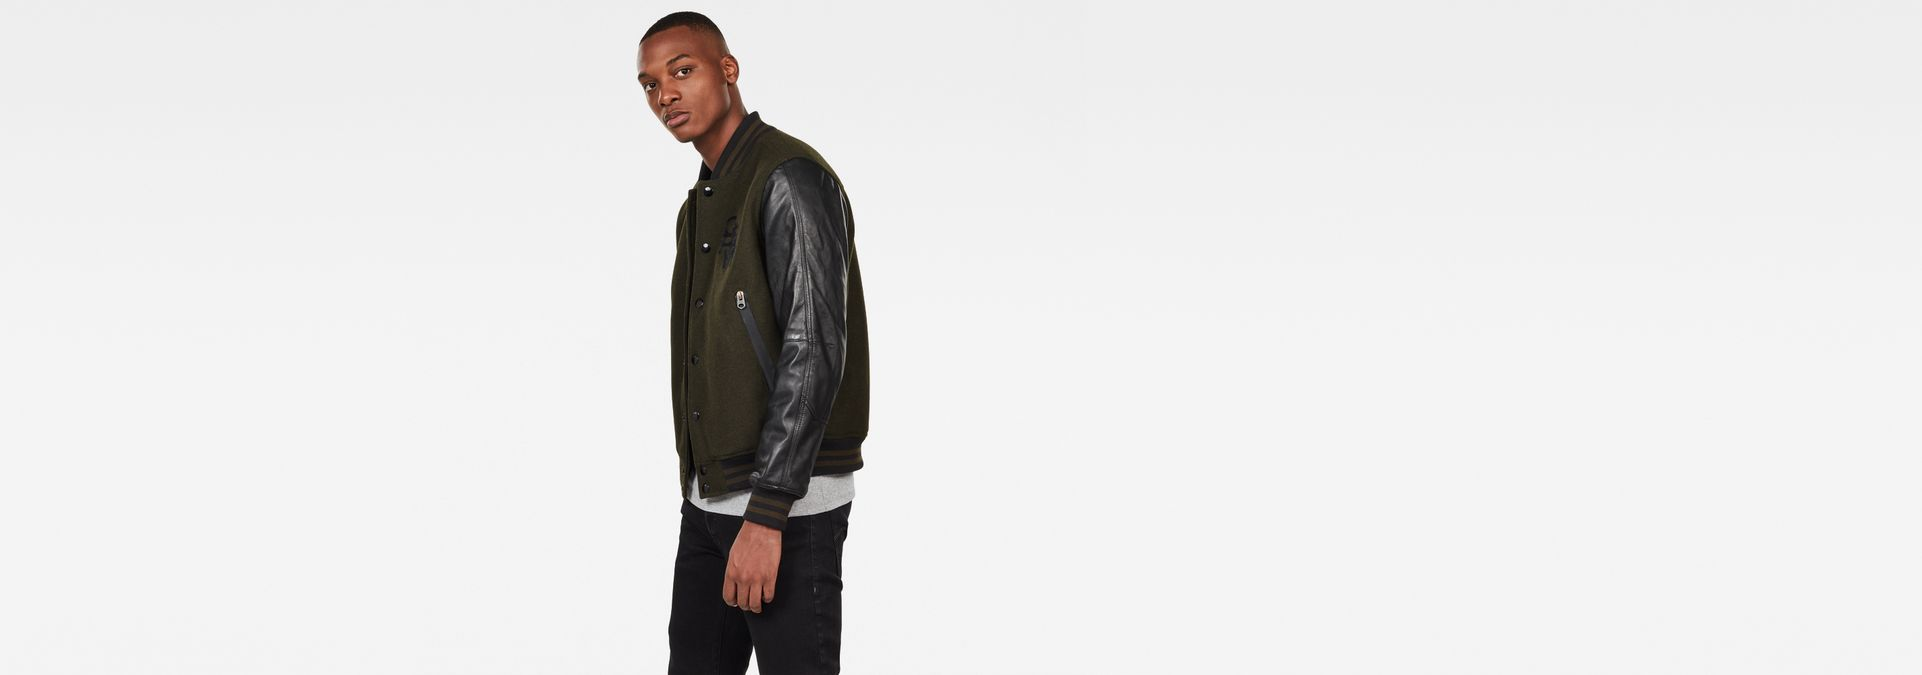 G-Star Raw Mens Bolt Leather Bomber Jacket